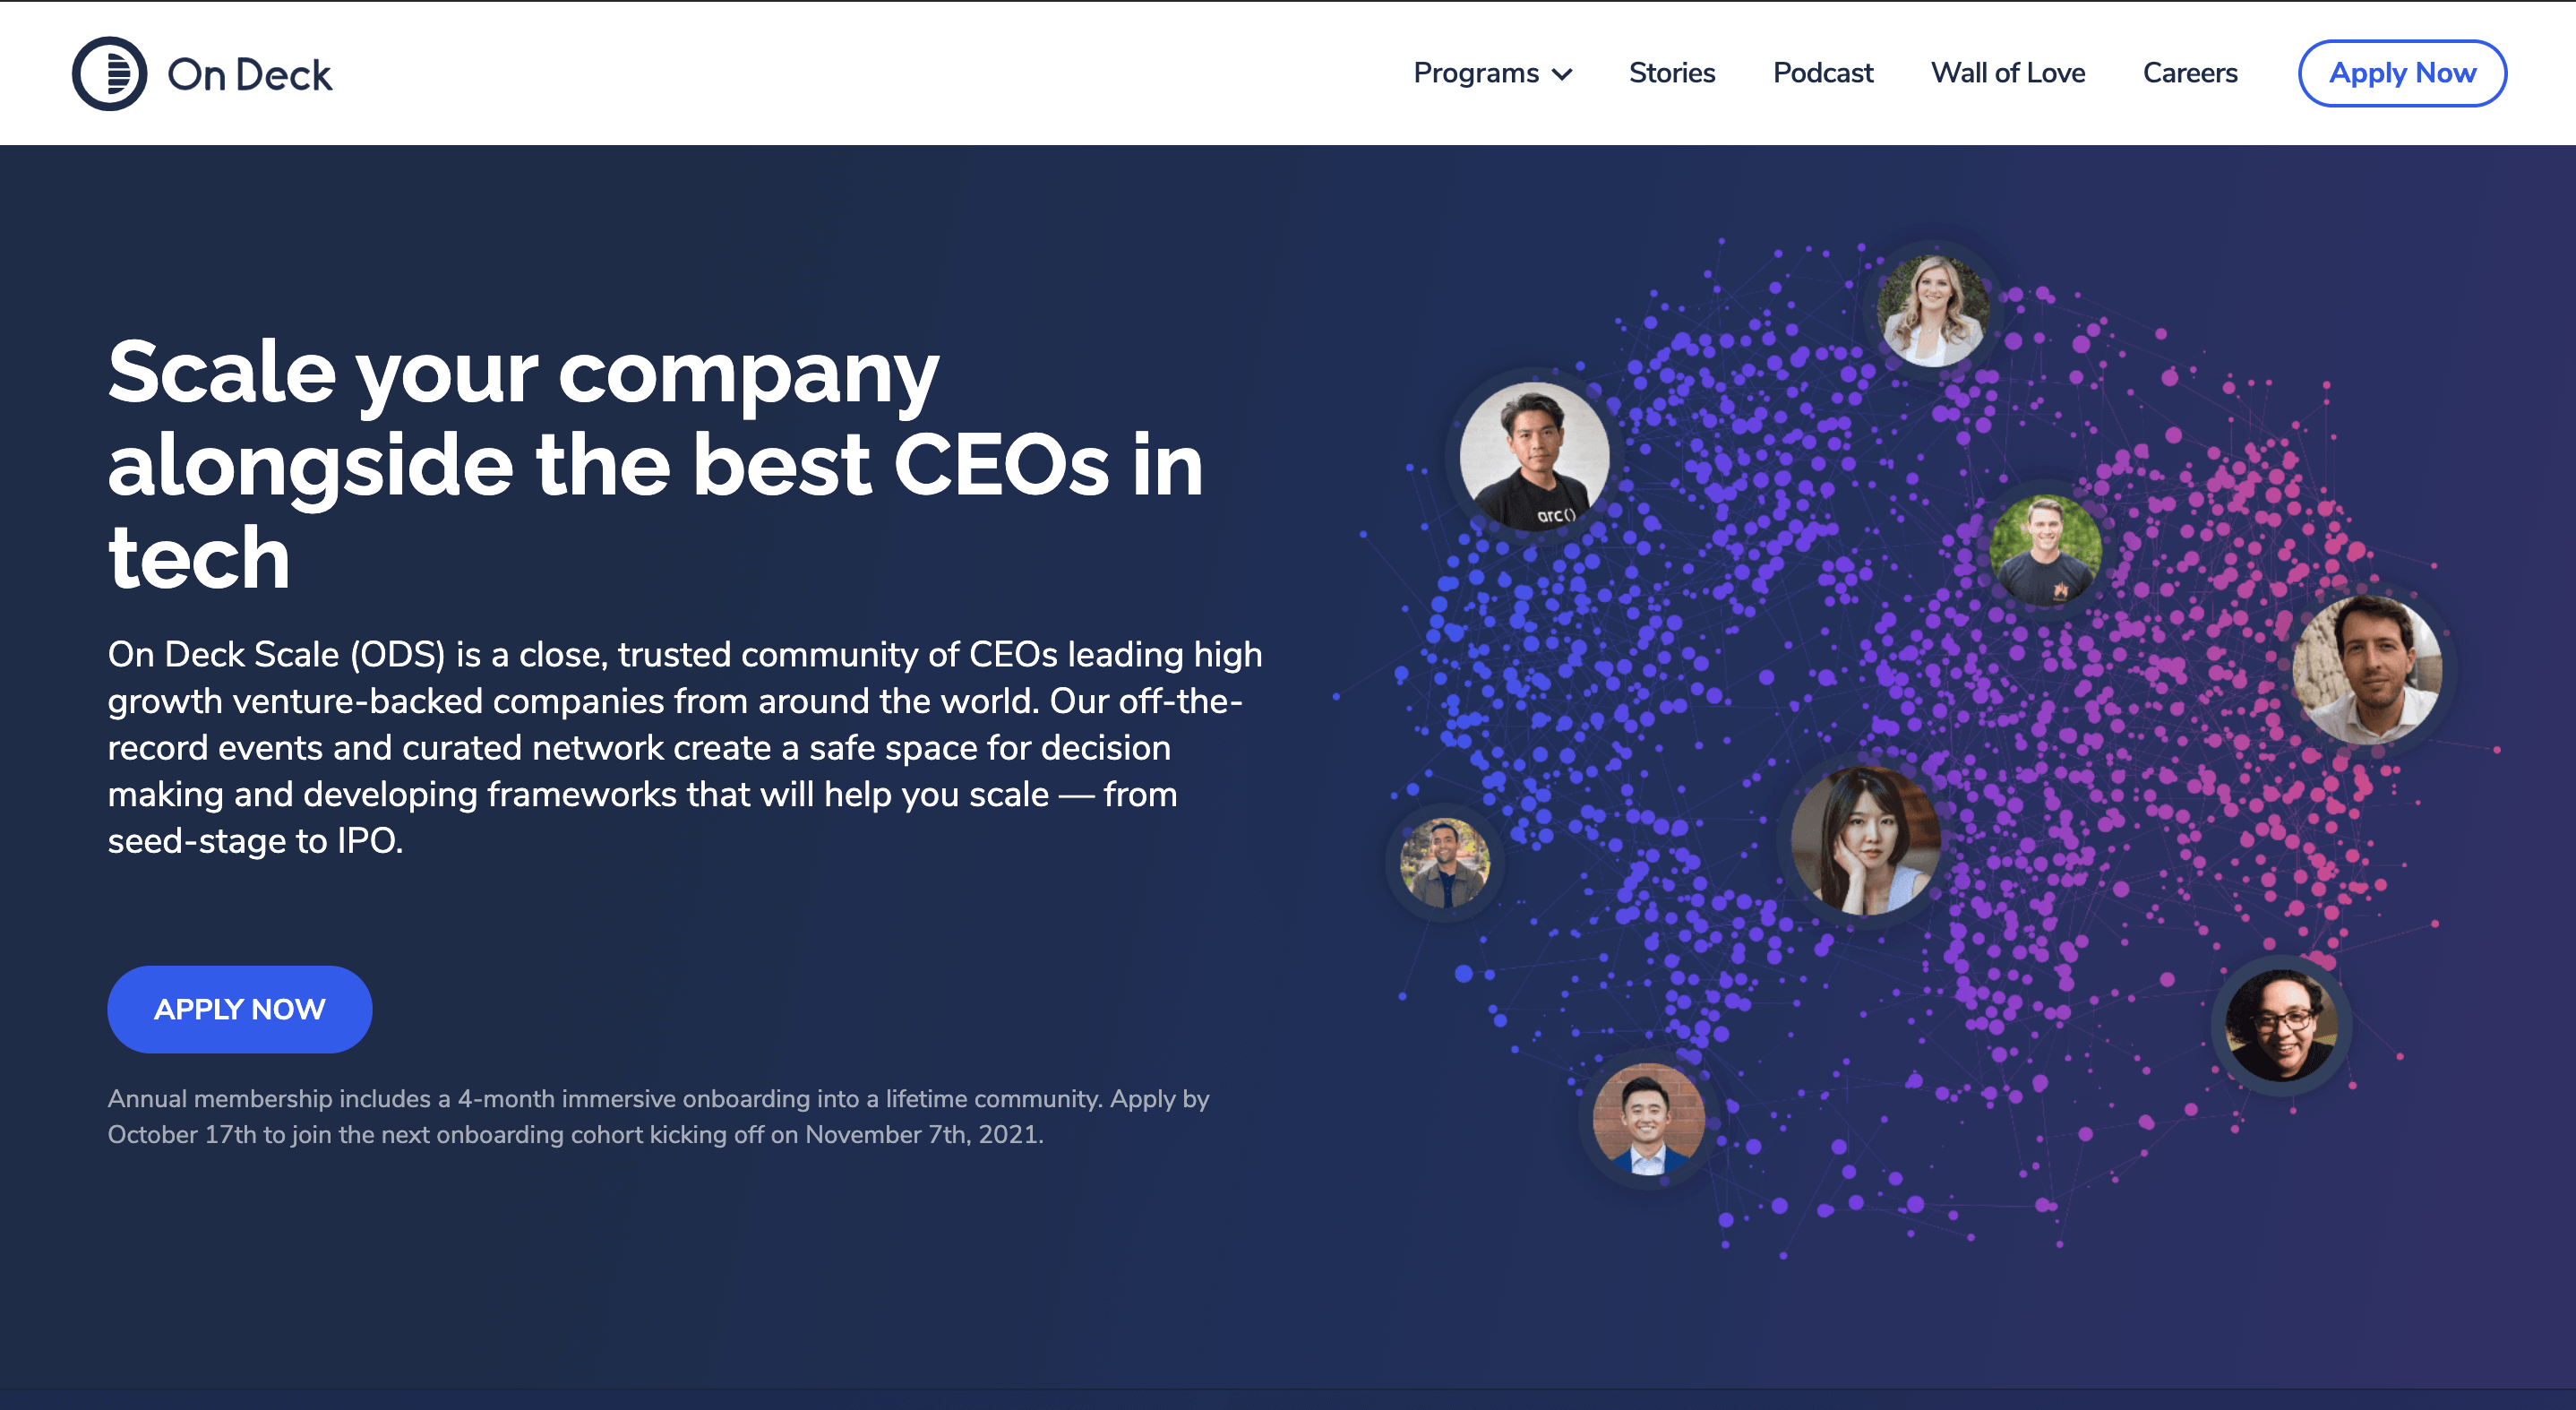 Landing page for On Deck that we built